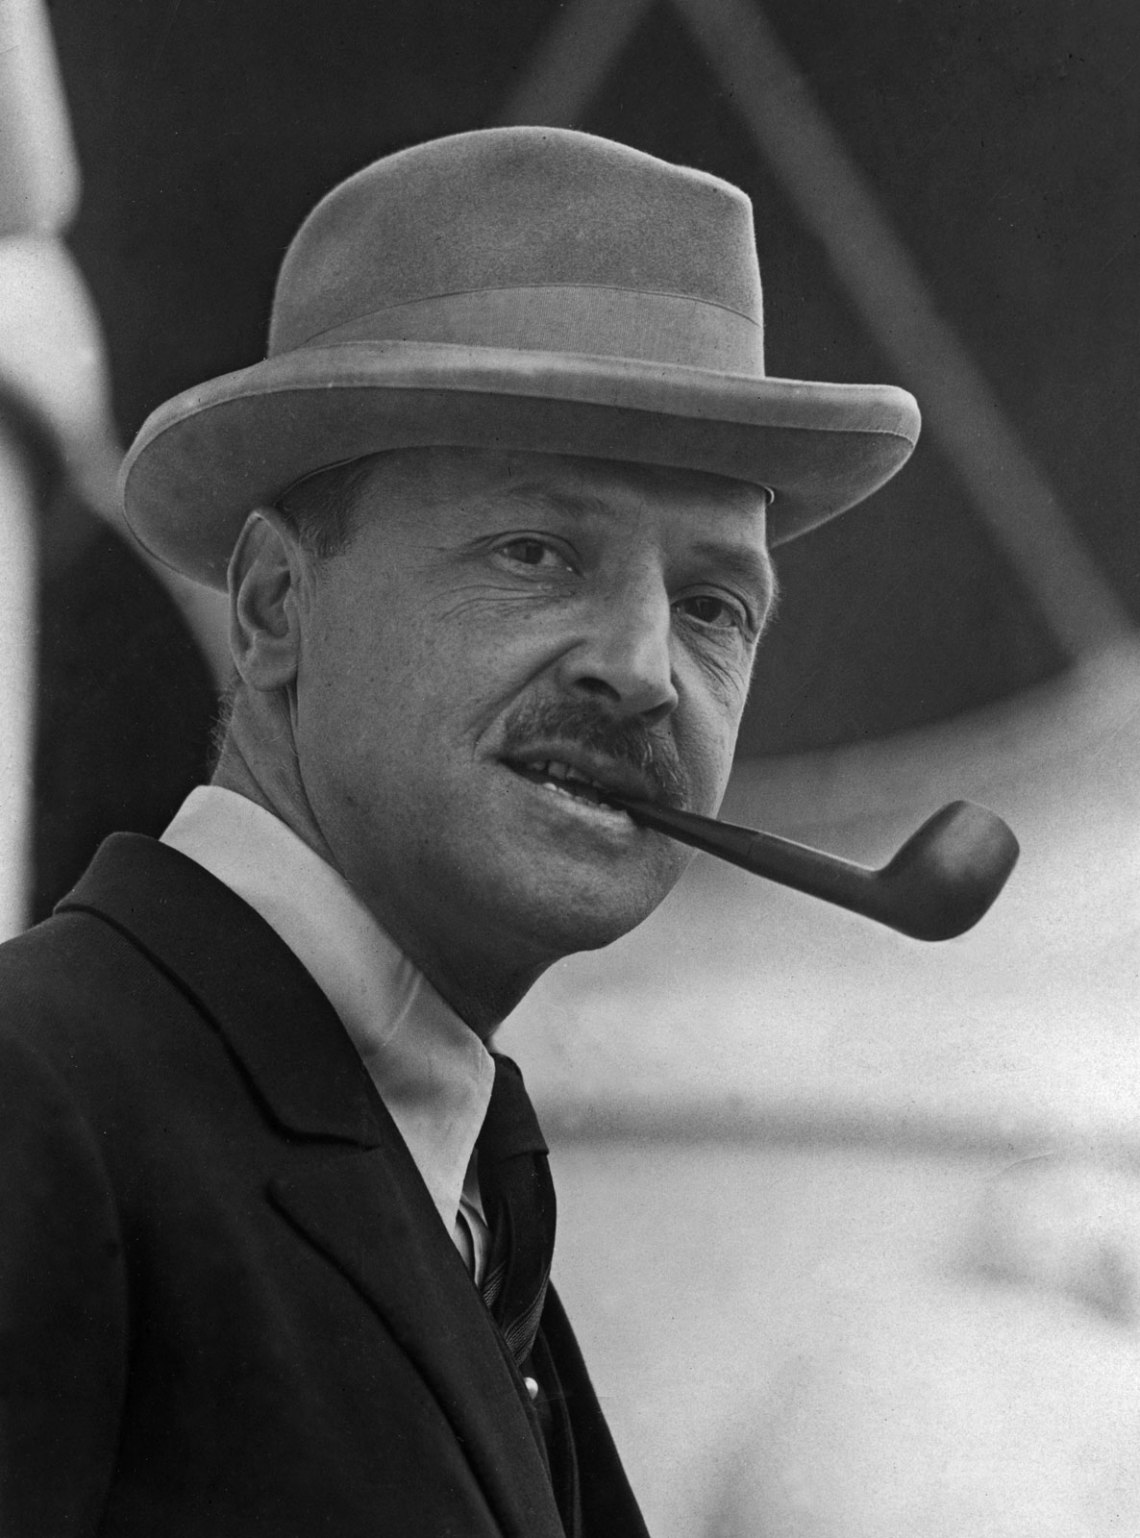 William Somerset Maugham Writer of story Mr. Know All